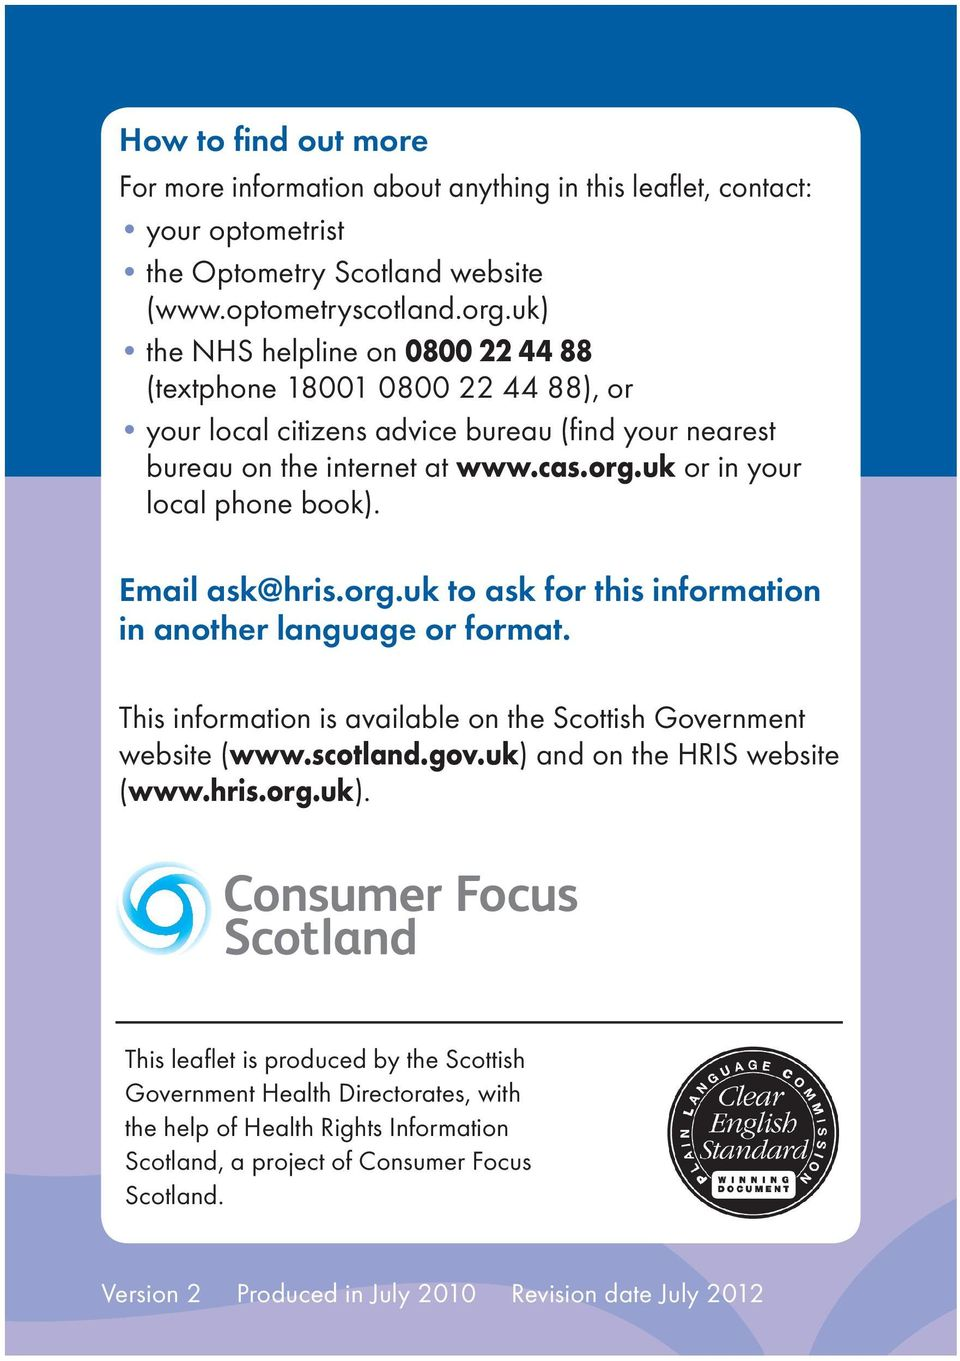 Email ask@hris.org.uk to ask for this information in another language or format. This information is available on the Scottish Government website (www.scotland.gov.uk) and on the HRIS website (www.